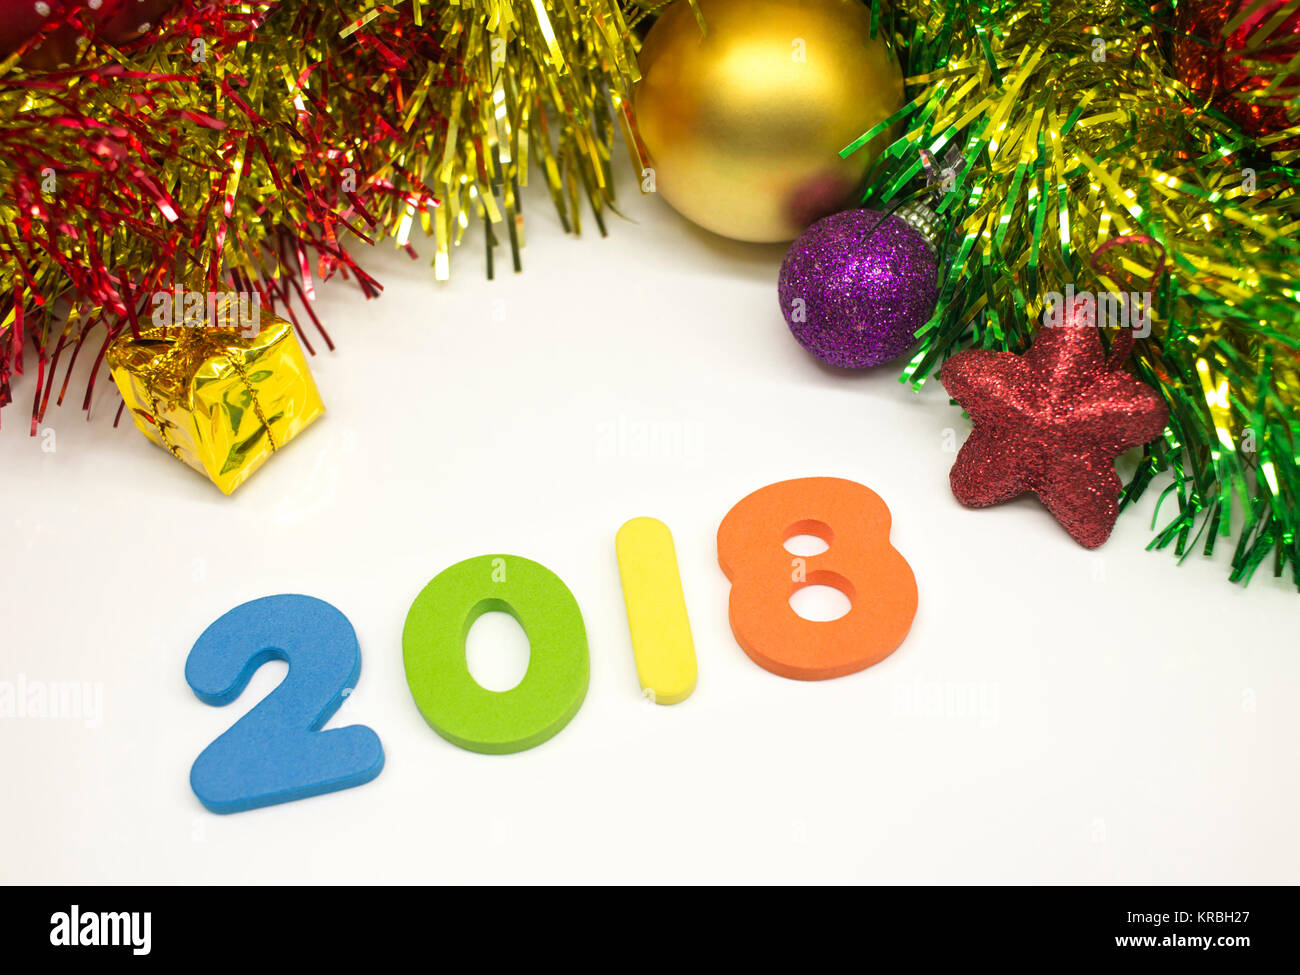 Happy New Year 2018 colourful tinsel Christmas decoration background - Stock Image